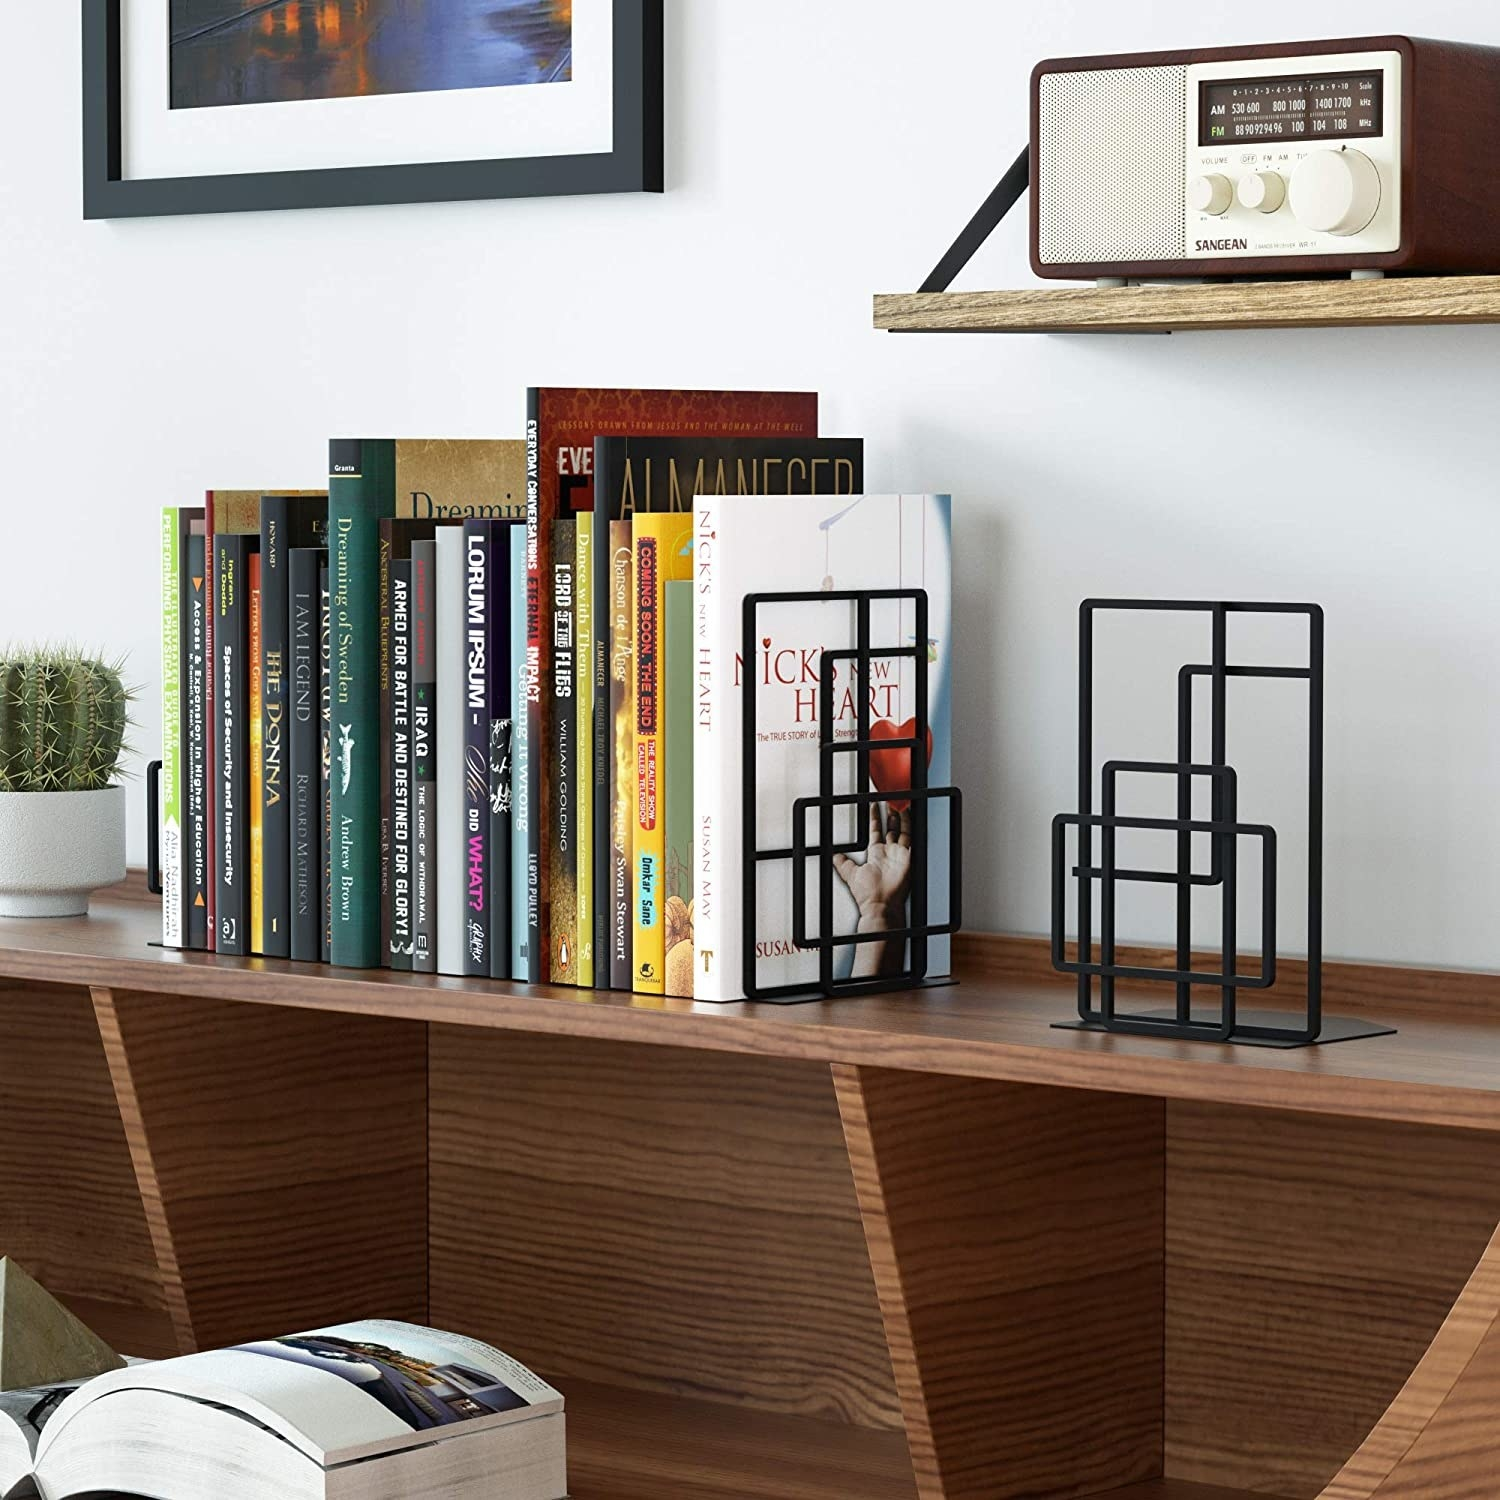 A pair of geometric metal bookends keeping a stack of books upright on a shelf